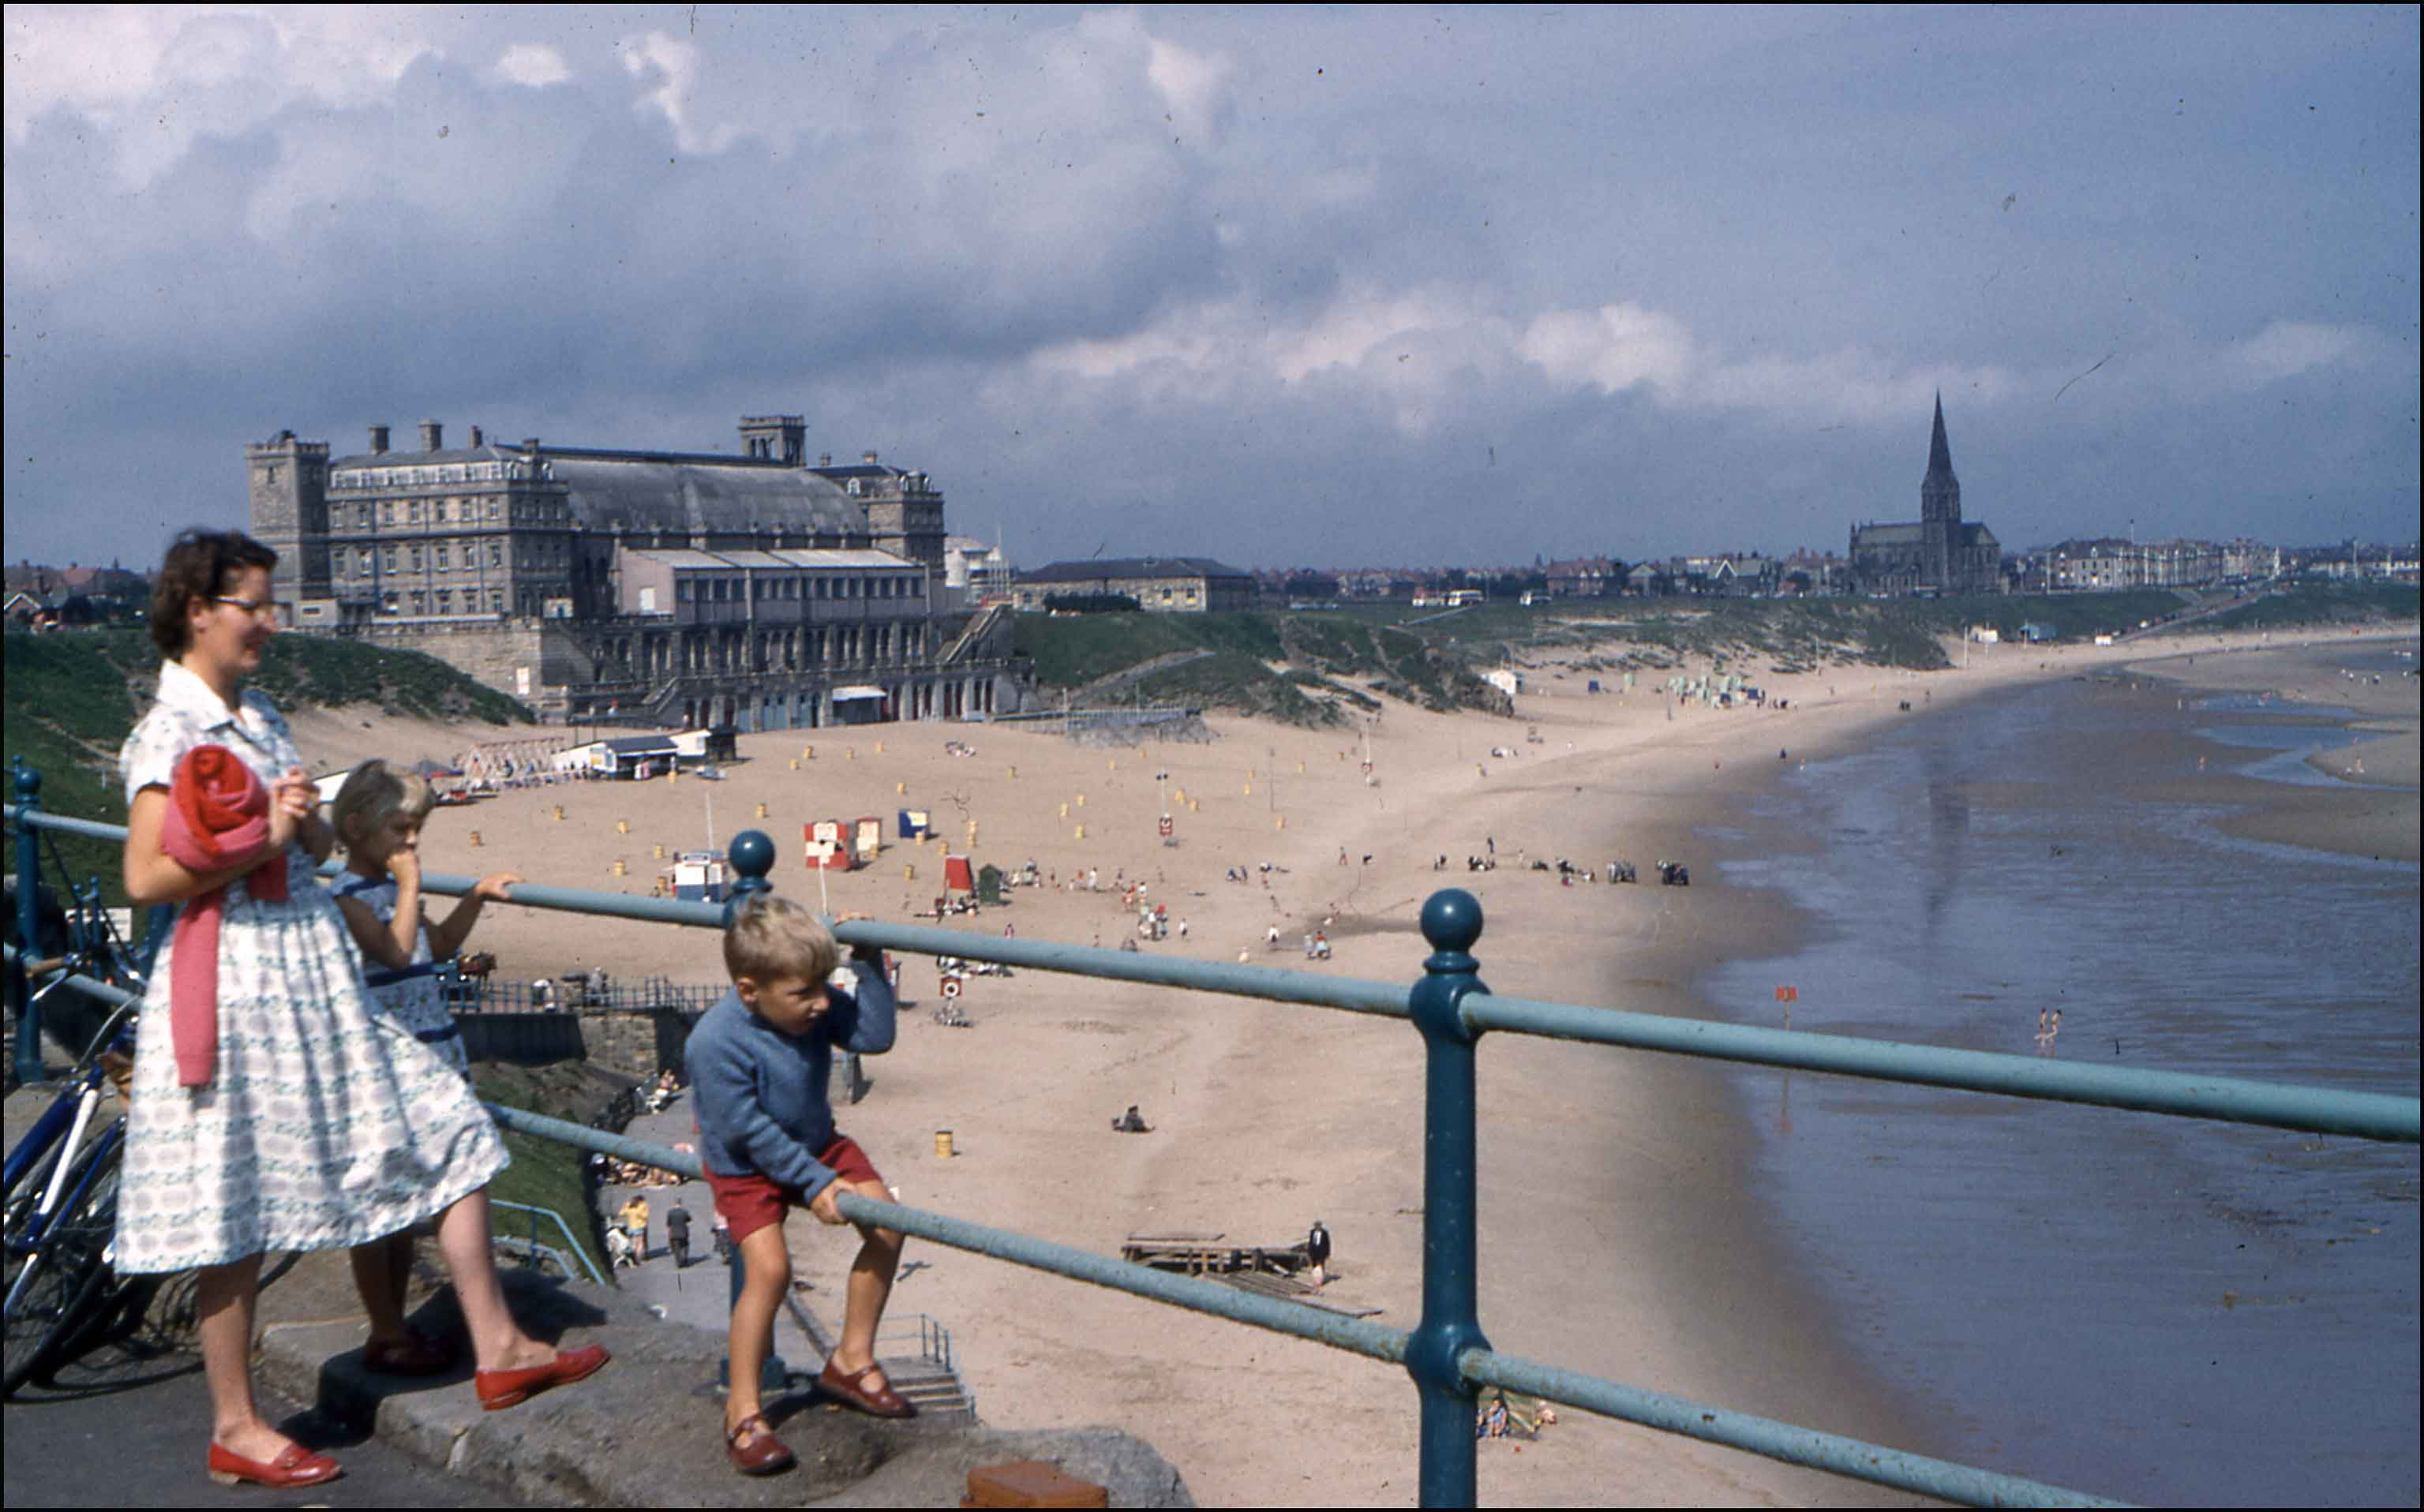 Photograph of Mother and Child at Tynemouth Long Sands with Plaza in background